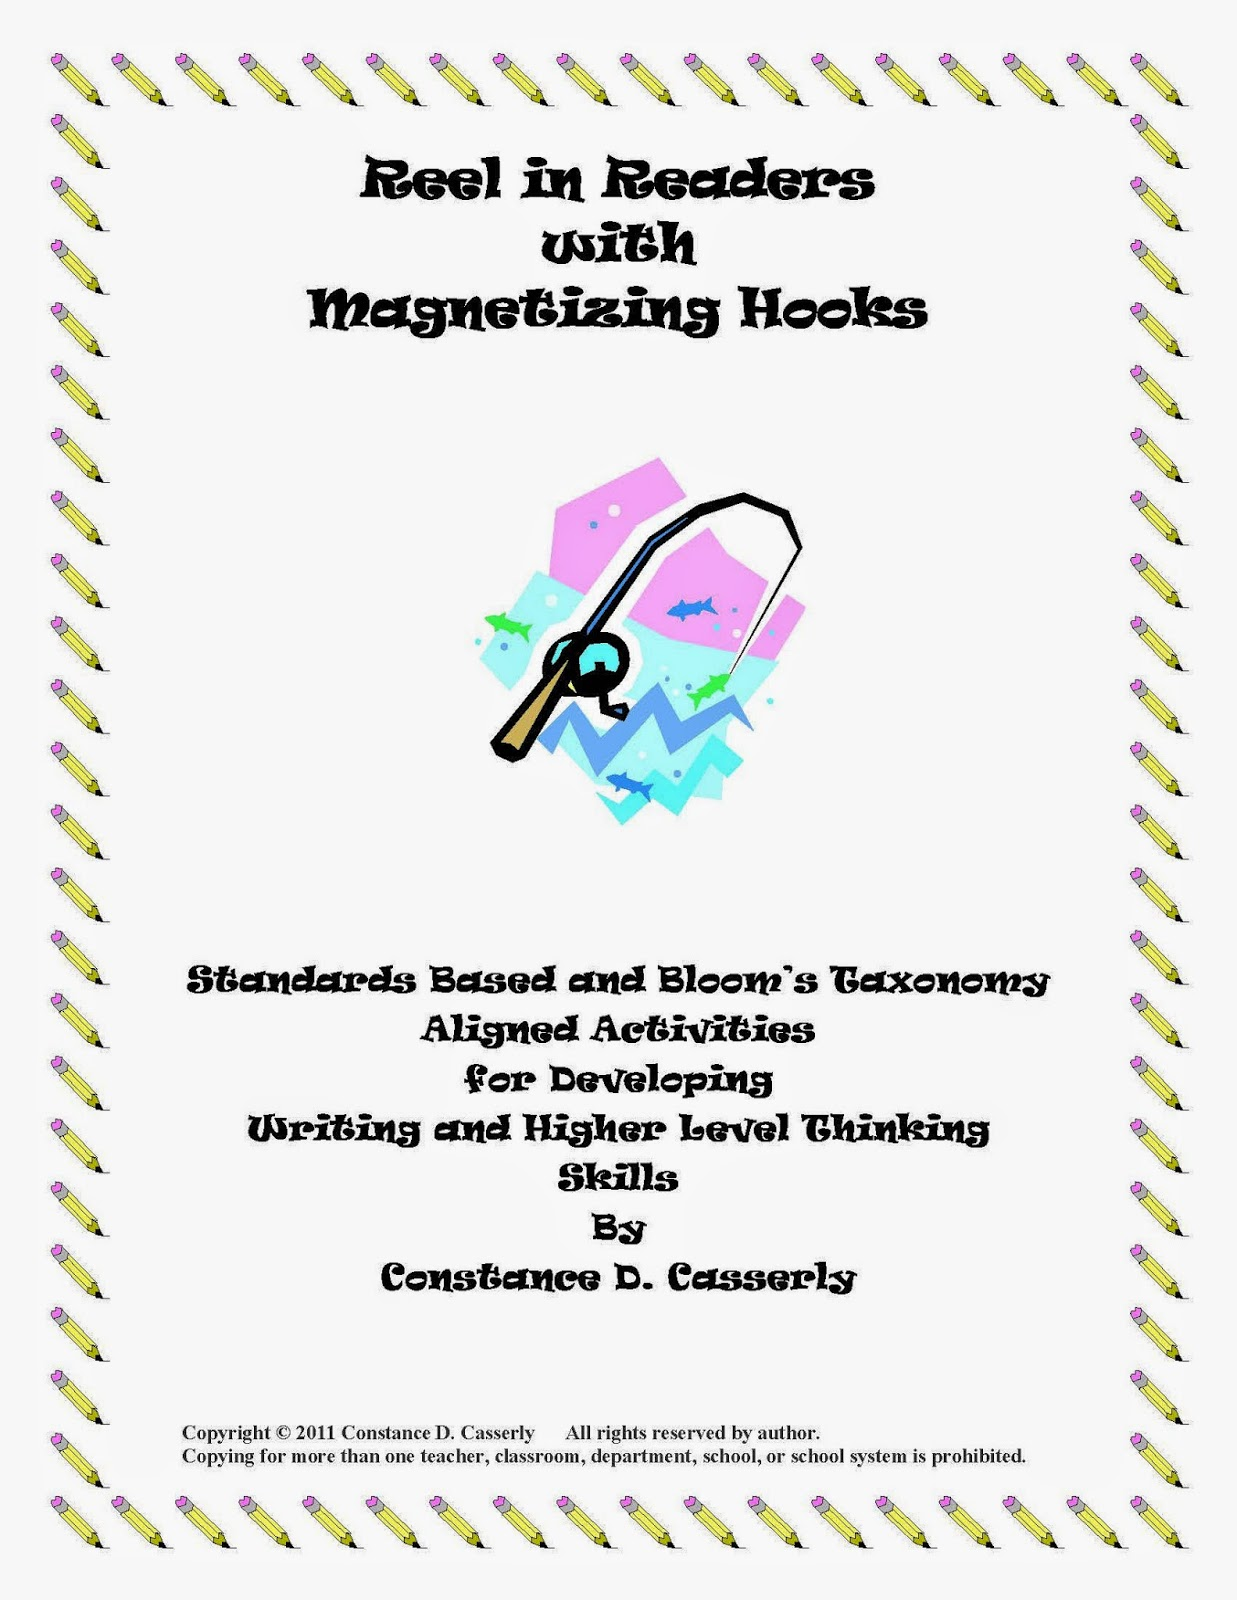 """Reeling in Readers With Magnetizing Hooks"""